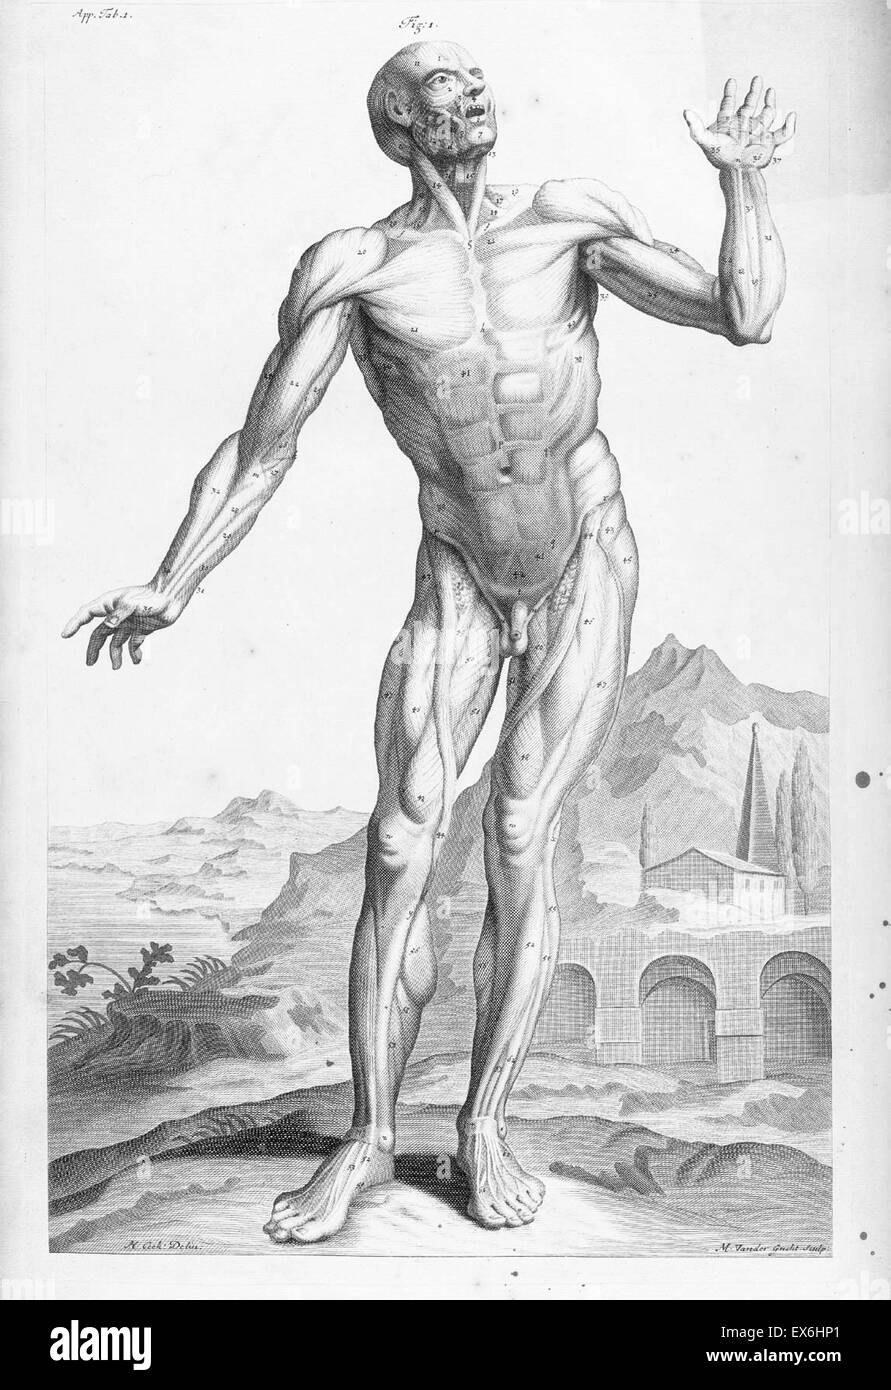 17th Century Anatomy Stock Photos & 17th Century Anatomy Stock ...